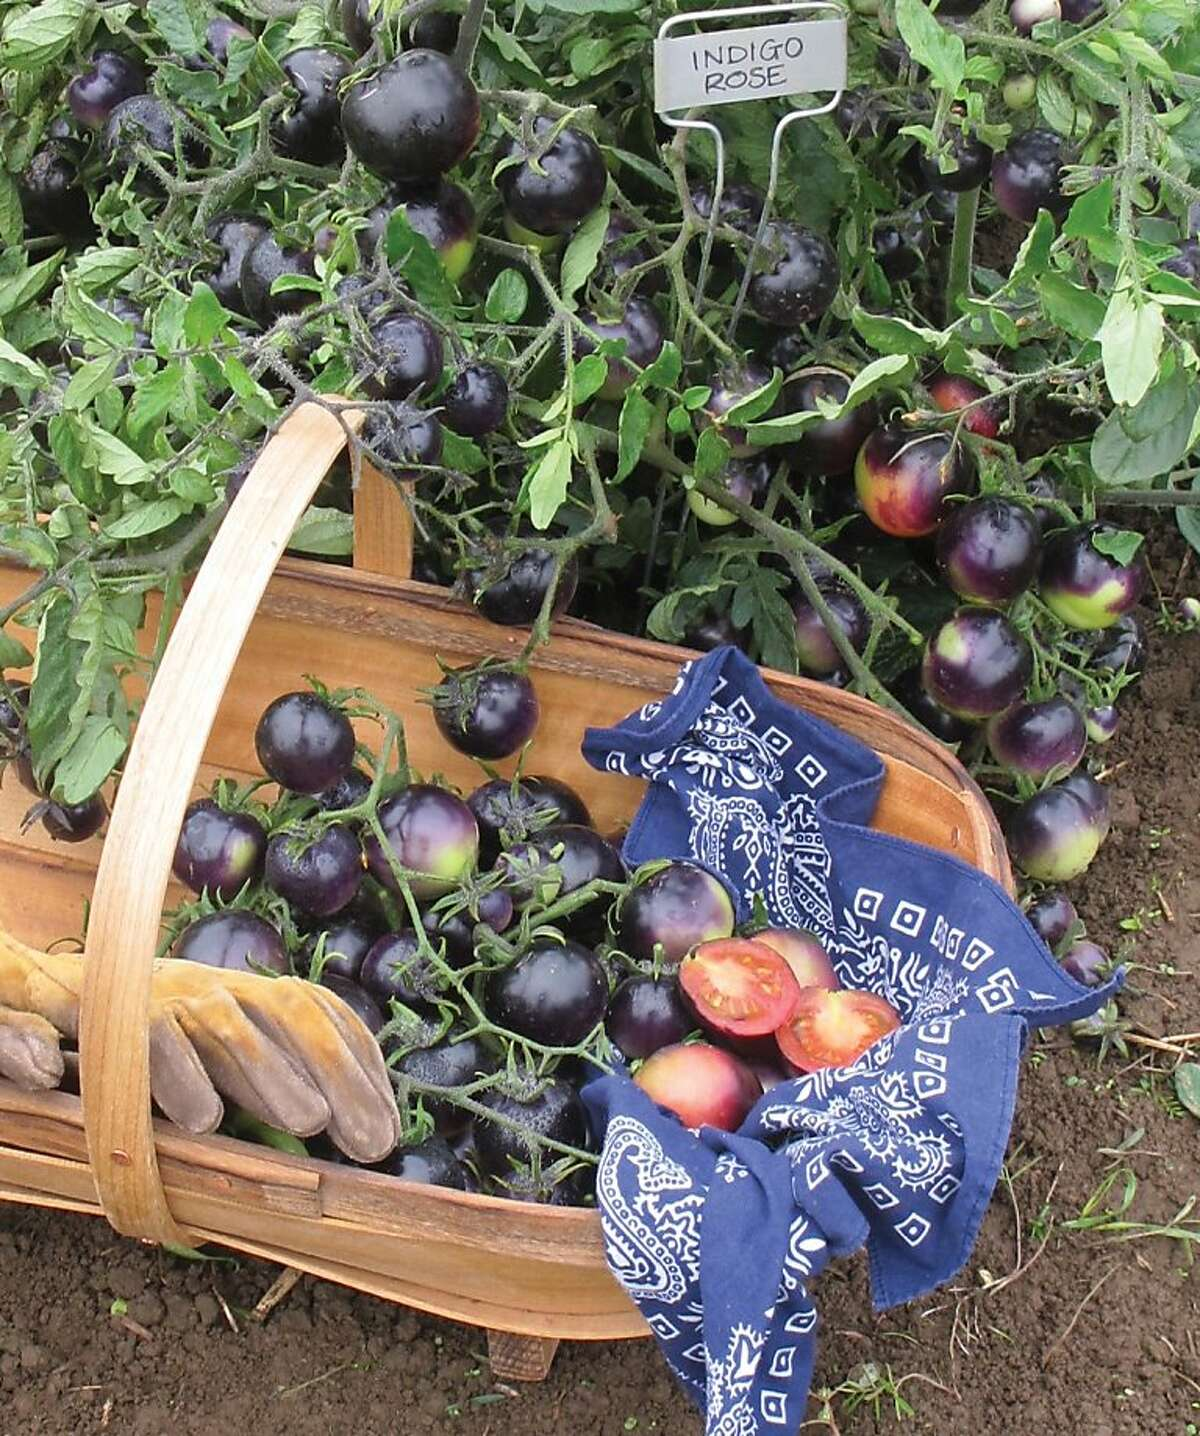 Indigo Rose is a purple-skin tomato that bears fruit in clusters. Photo